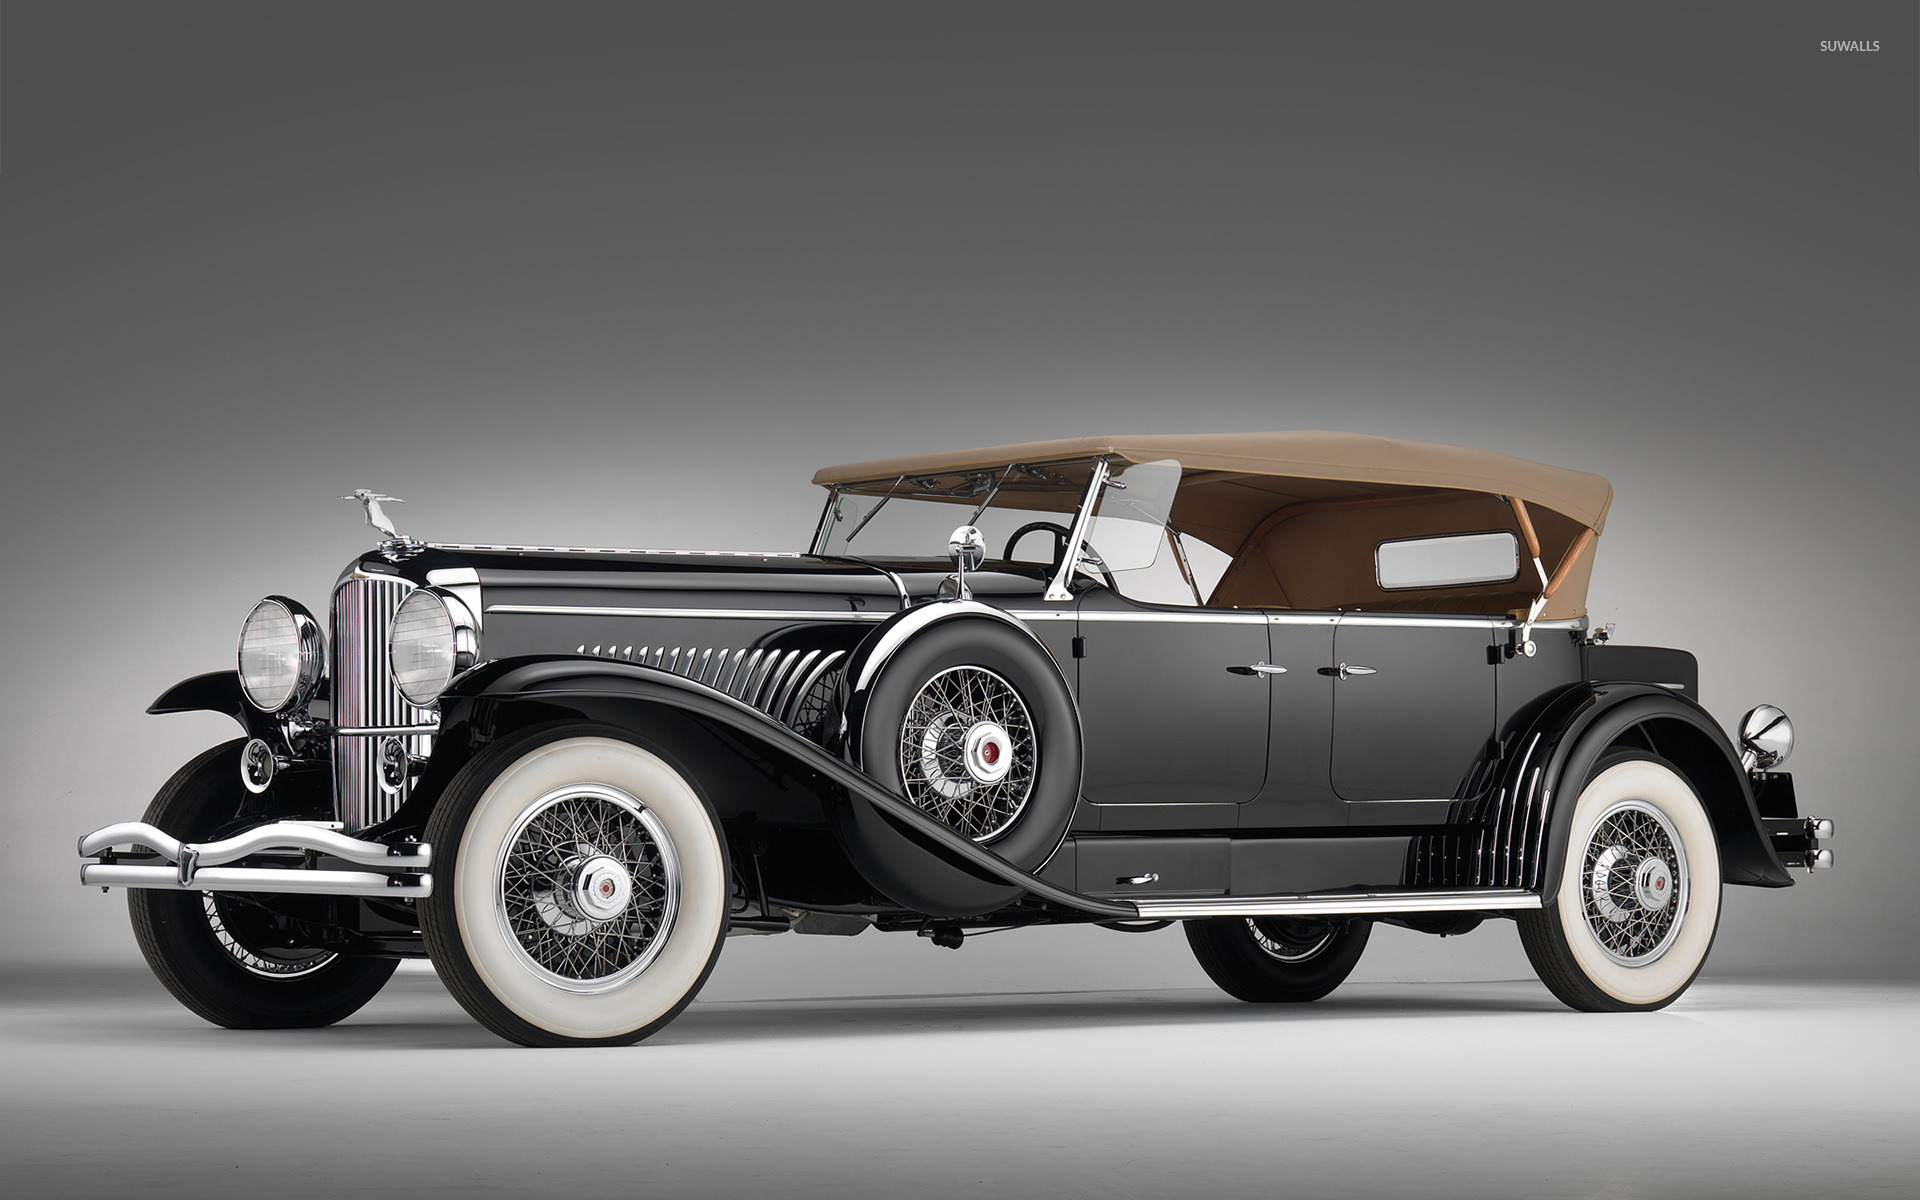 duesenberg vintage car wallpapers - photo #19